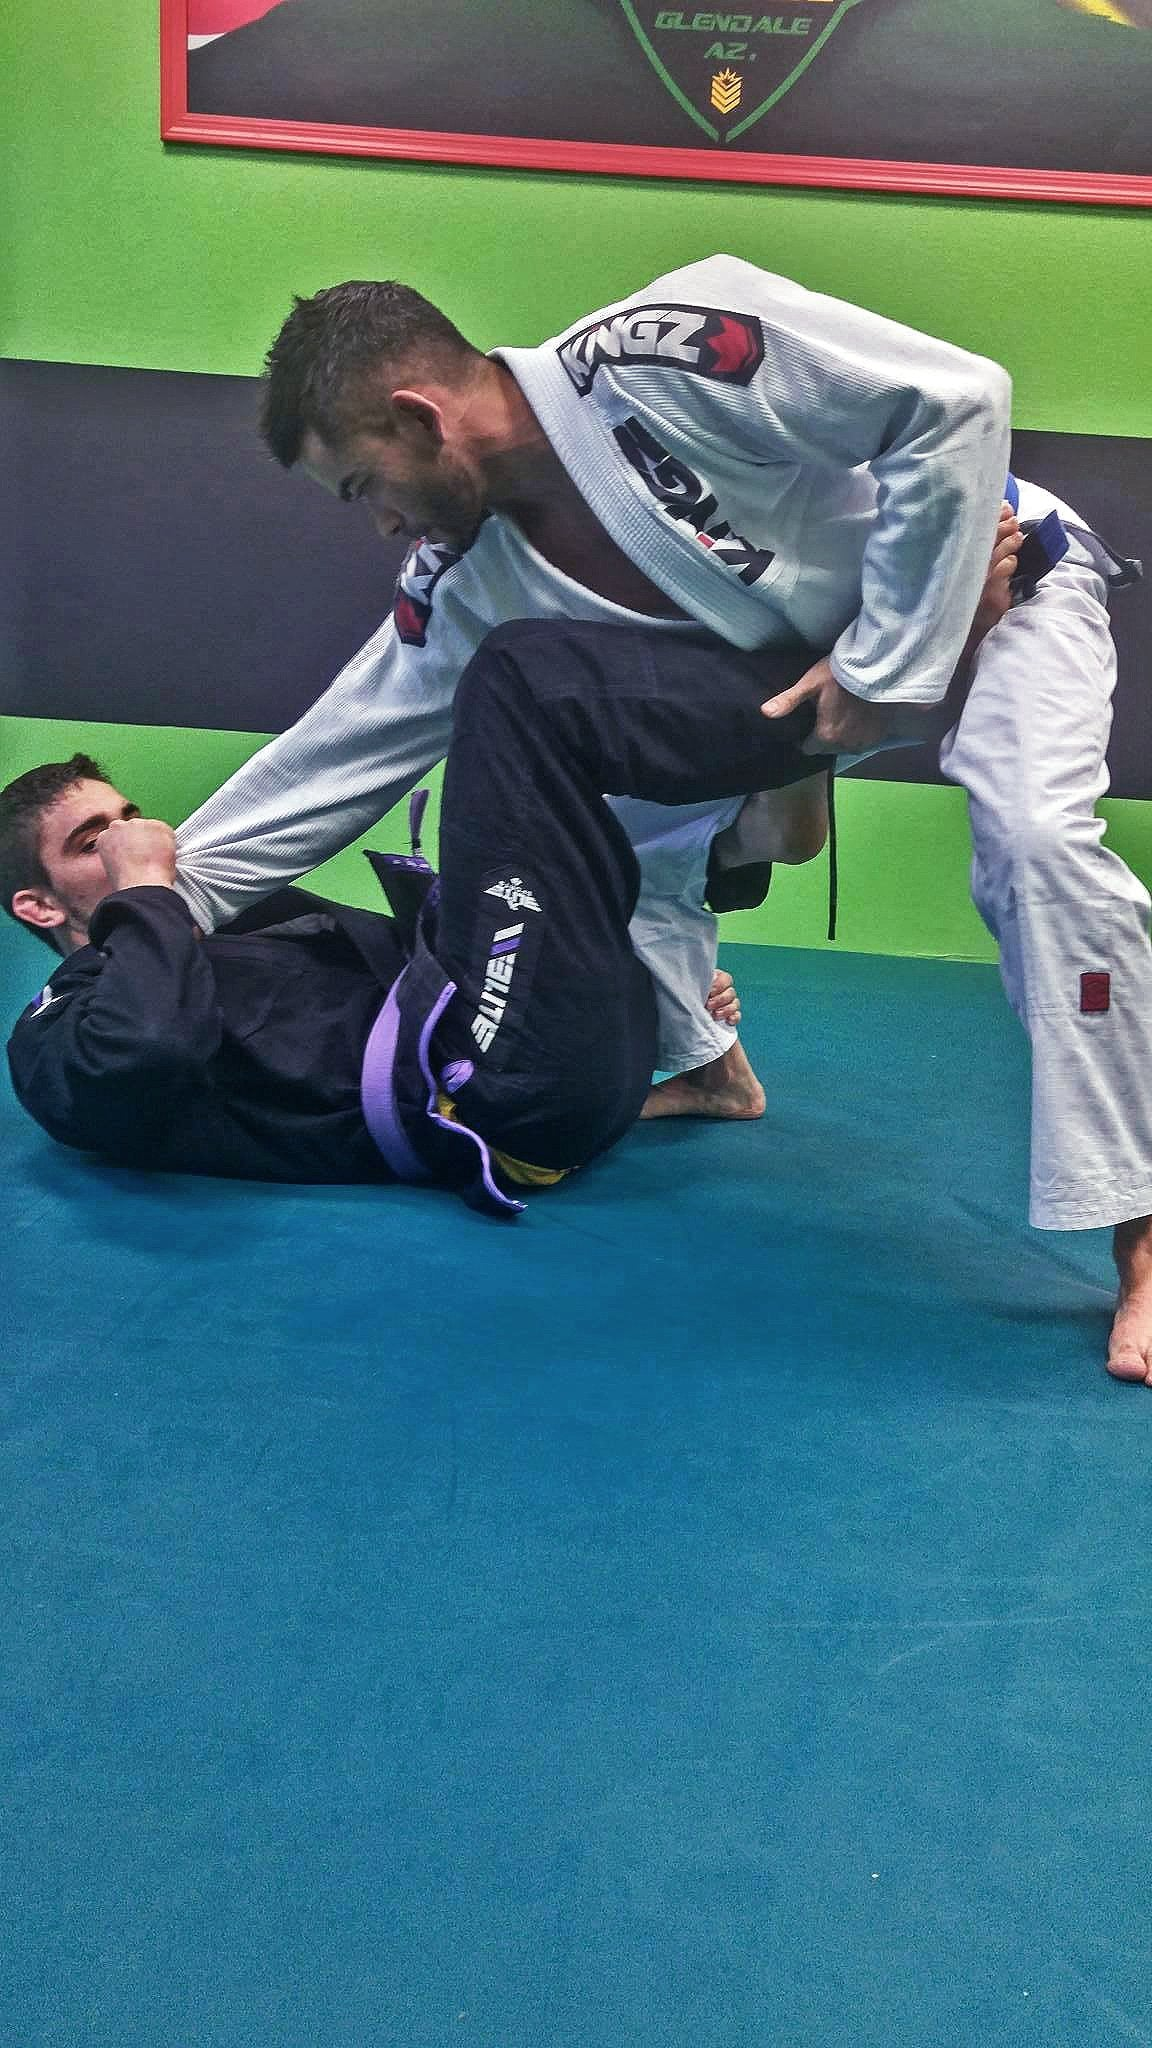 Elite Sports Team Elite Bjj Fighter Garrett Flanders Image3